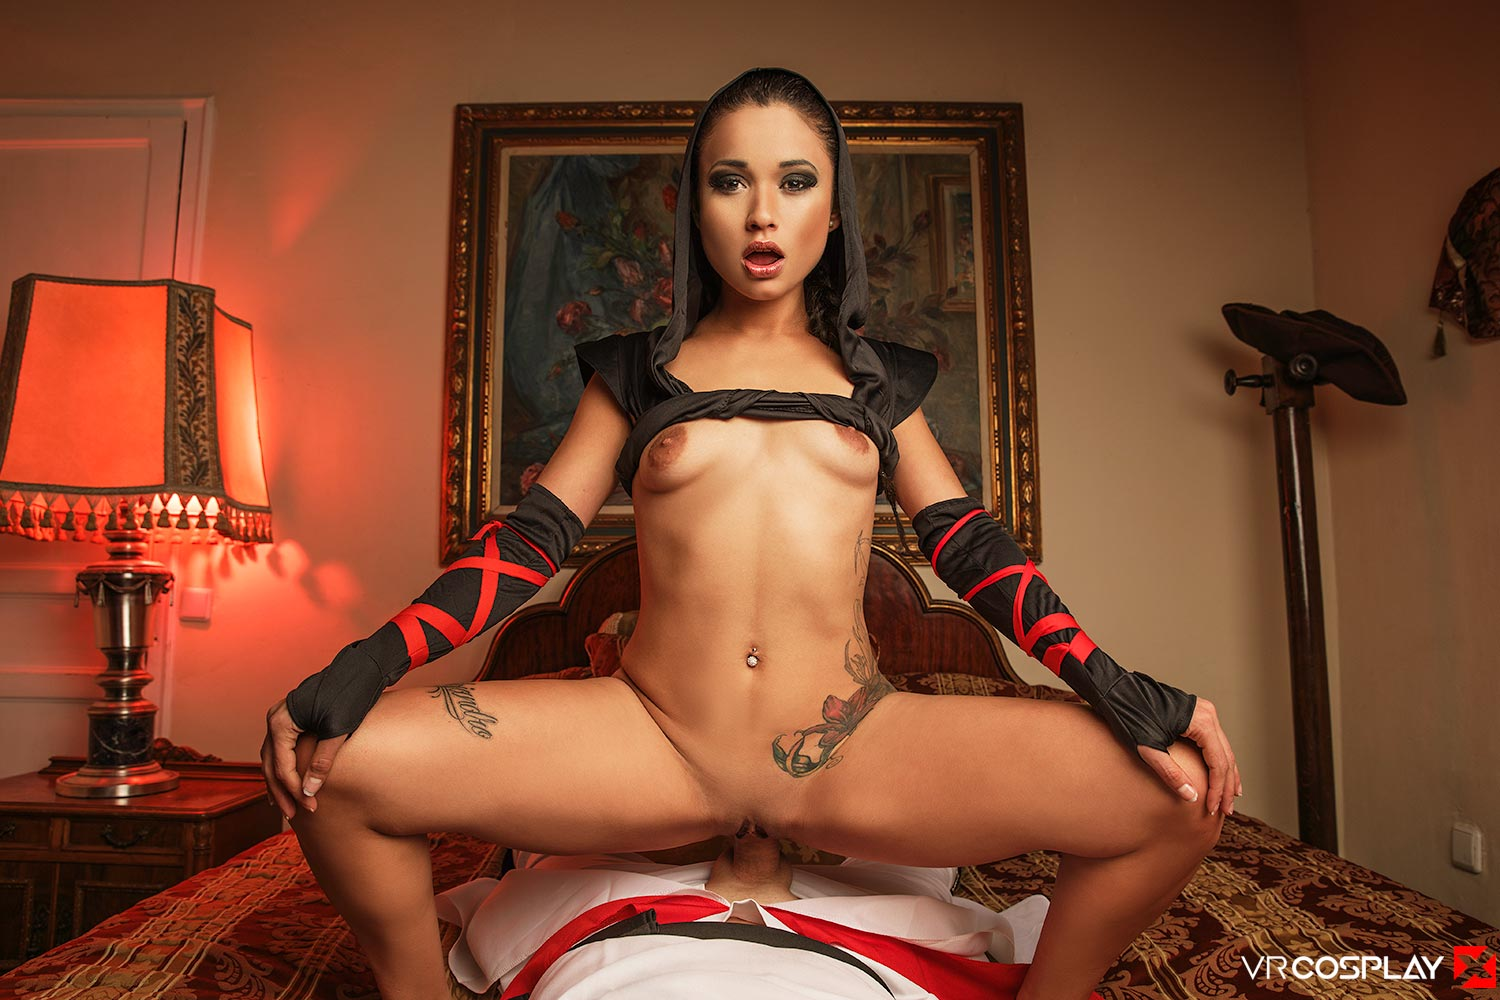 Assassin's Creed VR Porn Cosplay starring Jade Presley as Shao Jun